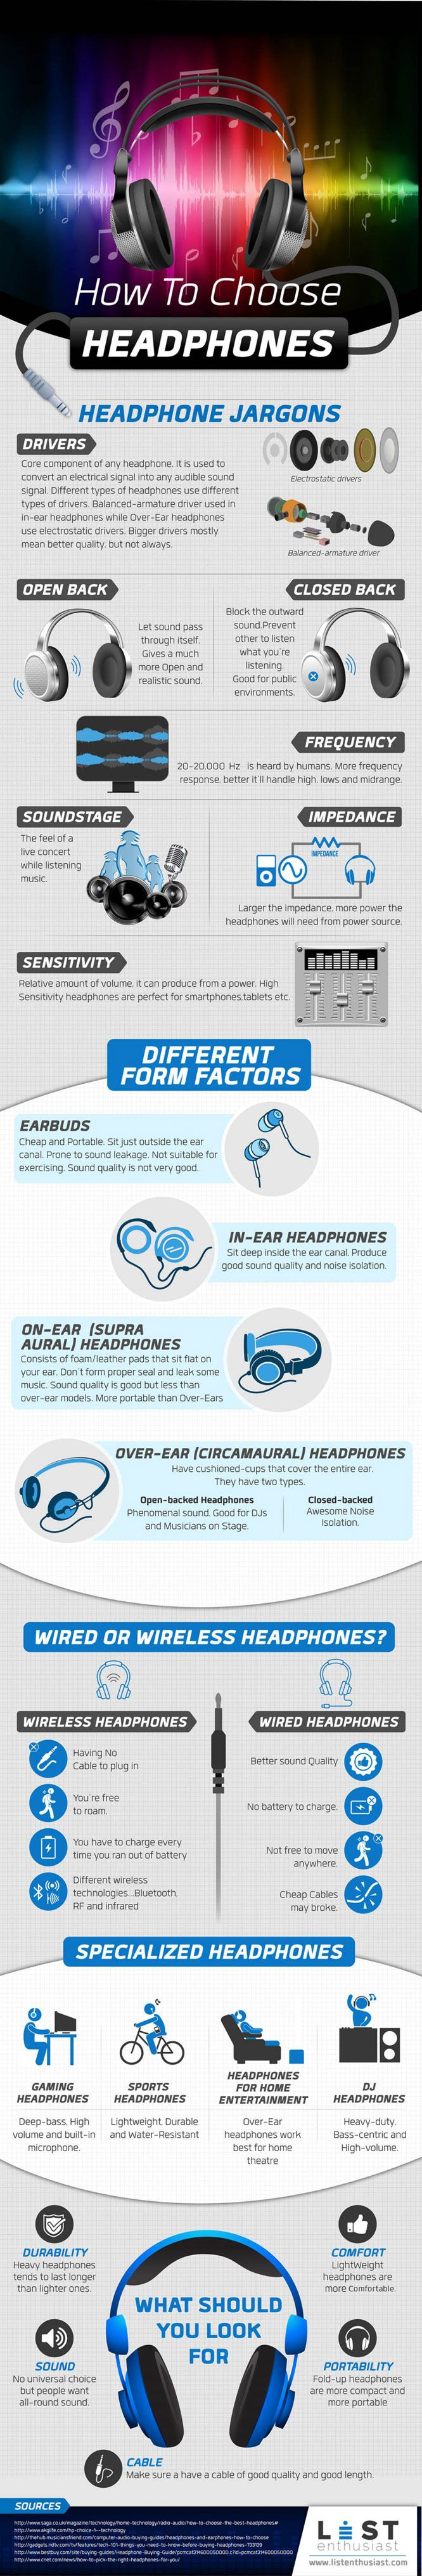 There are plenty of headphones available for sale these days. Not all of them are of the same quality though. This infographic from List Enthusiast takes a look at things you need to look for to find the best headphones for you.